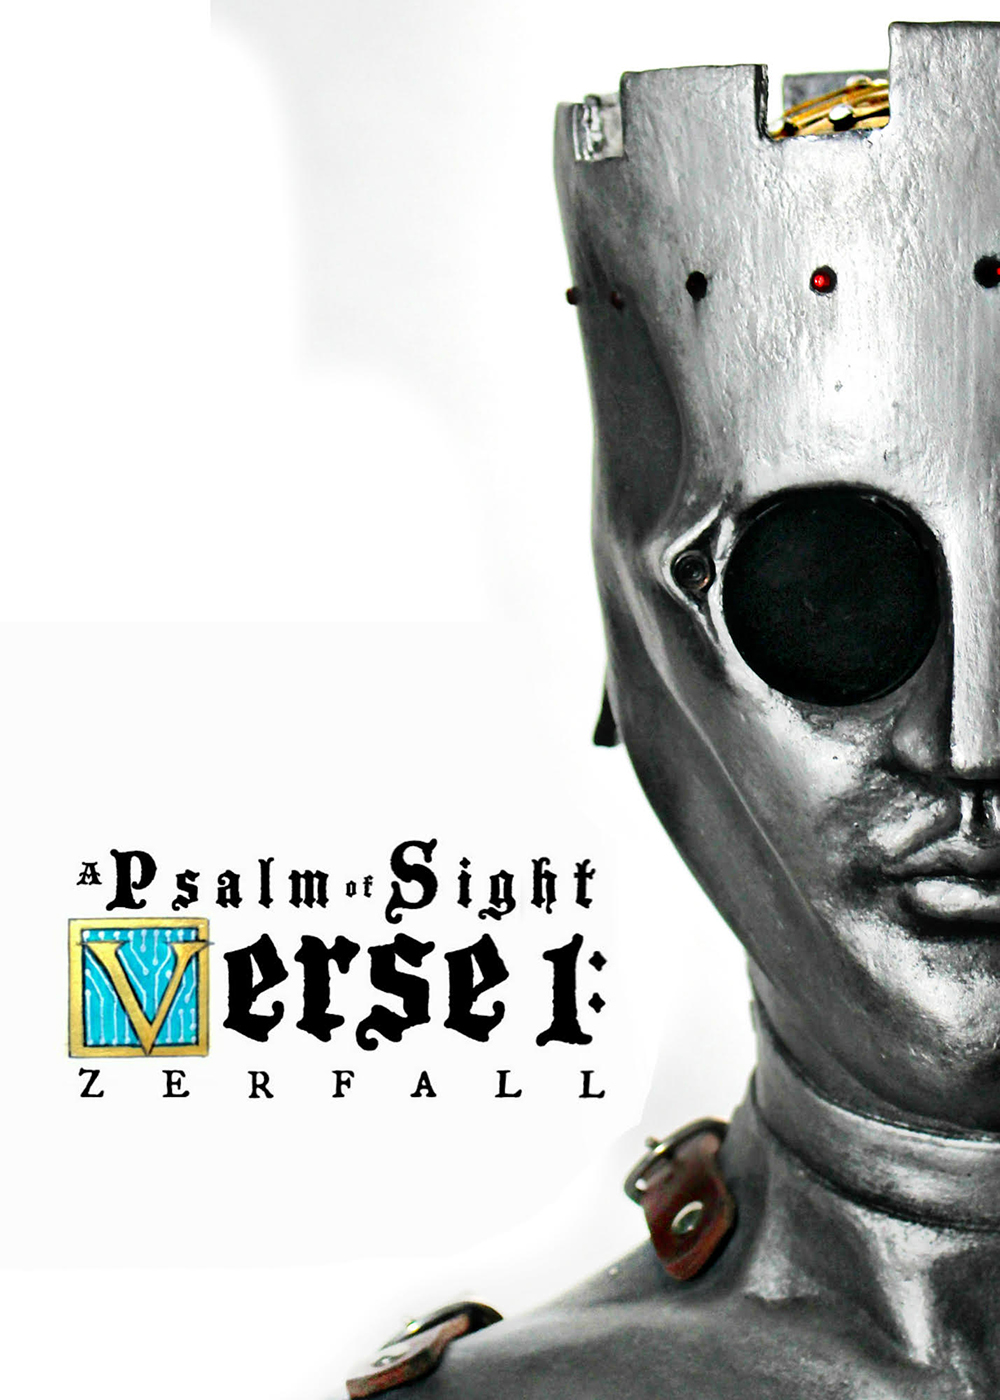 A Psalm of Sight Verse 1: Zerfall